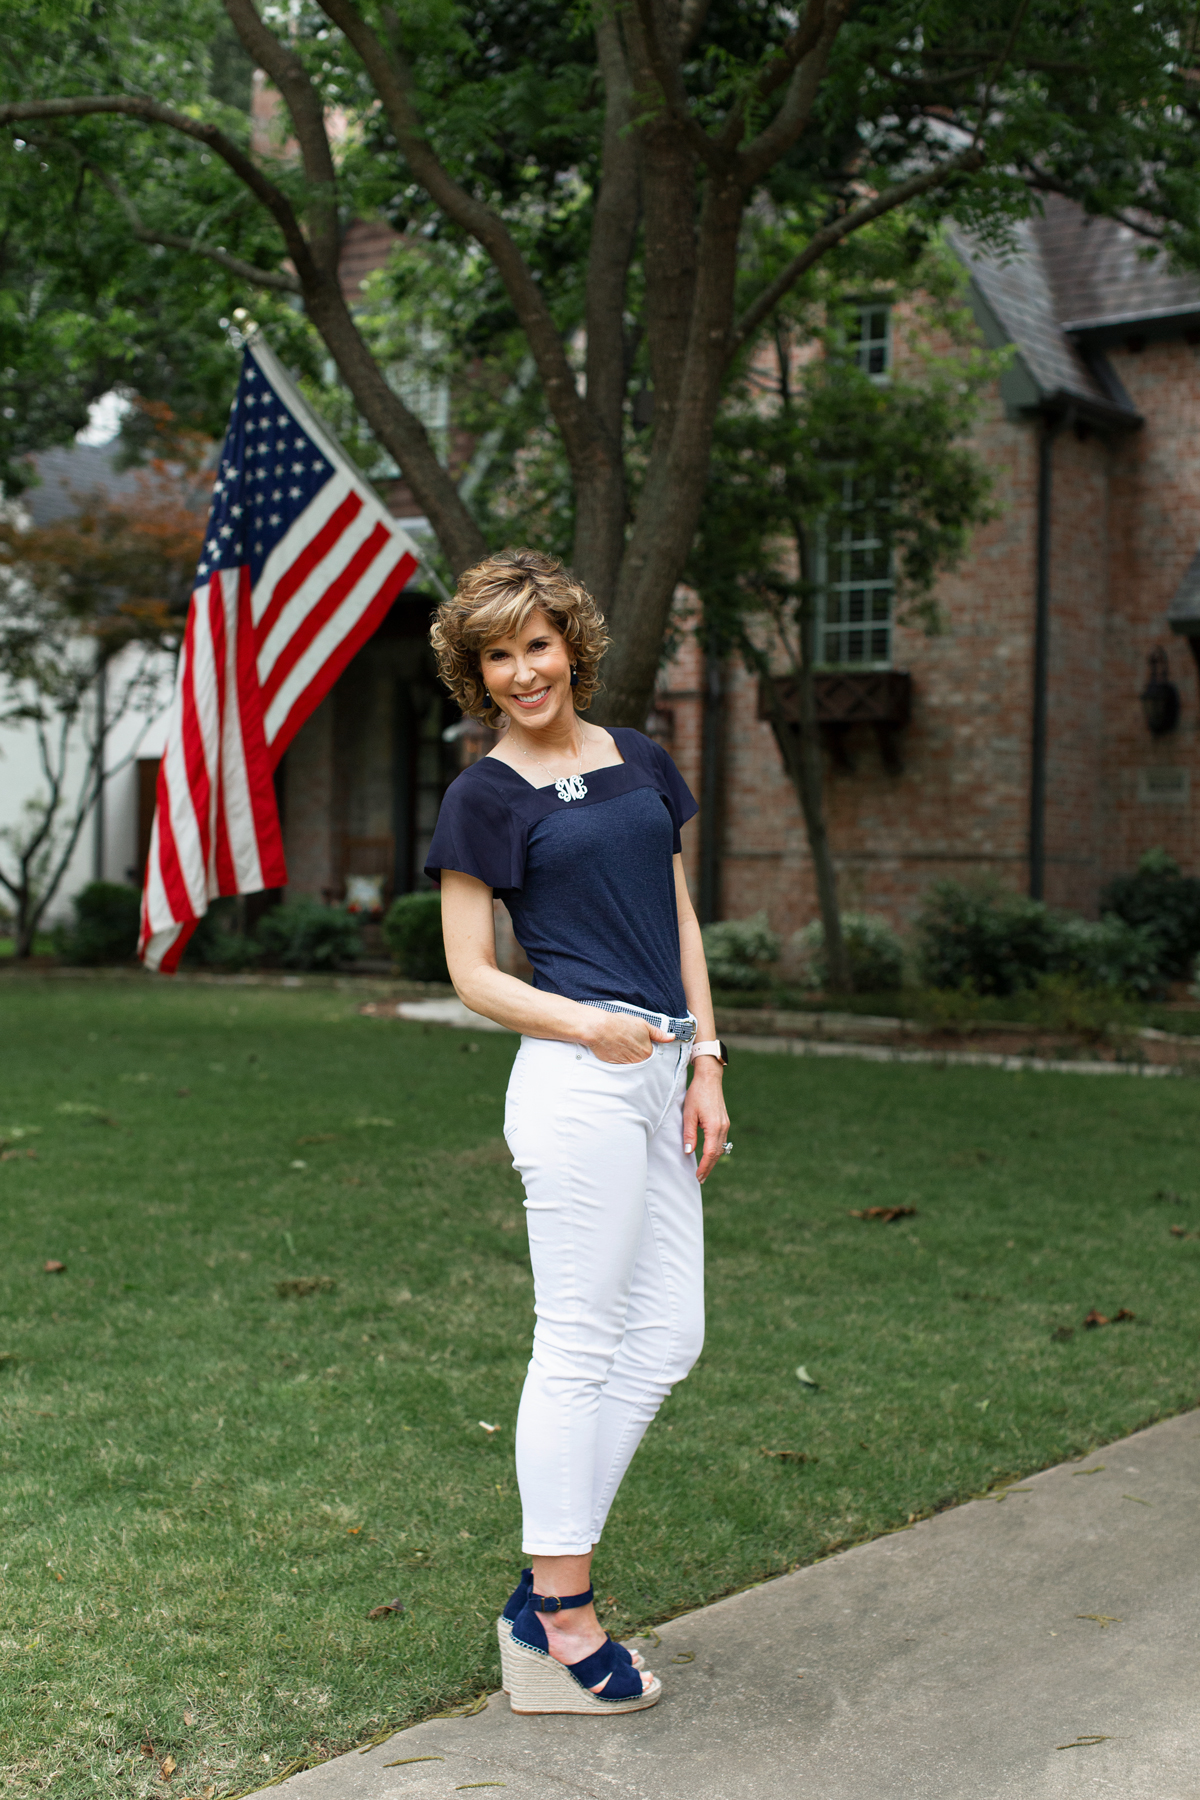 woman standing in front yard with flag